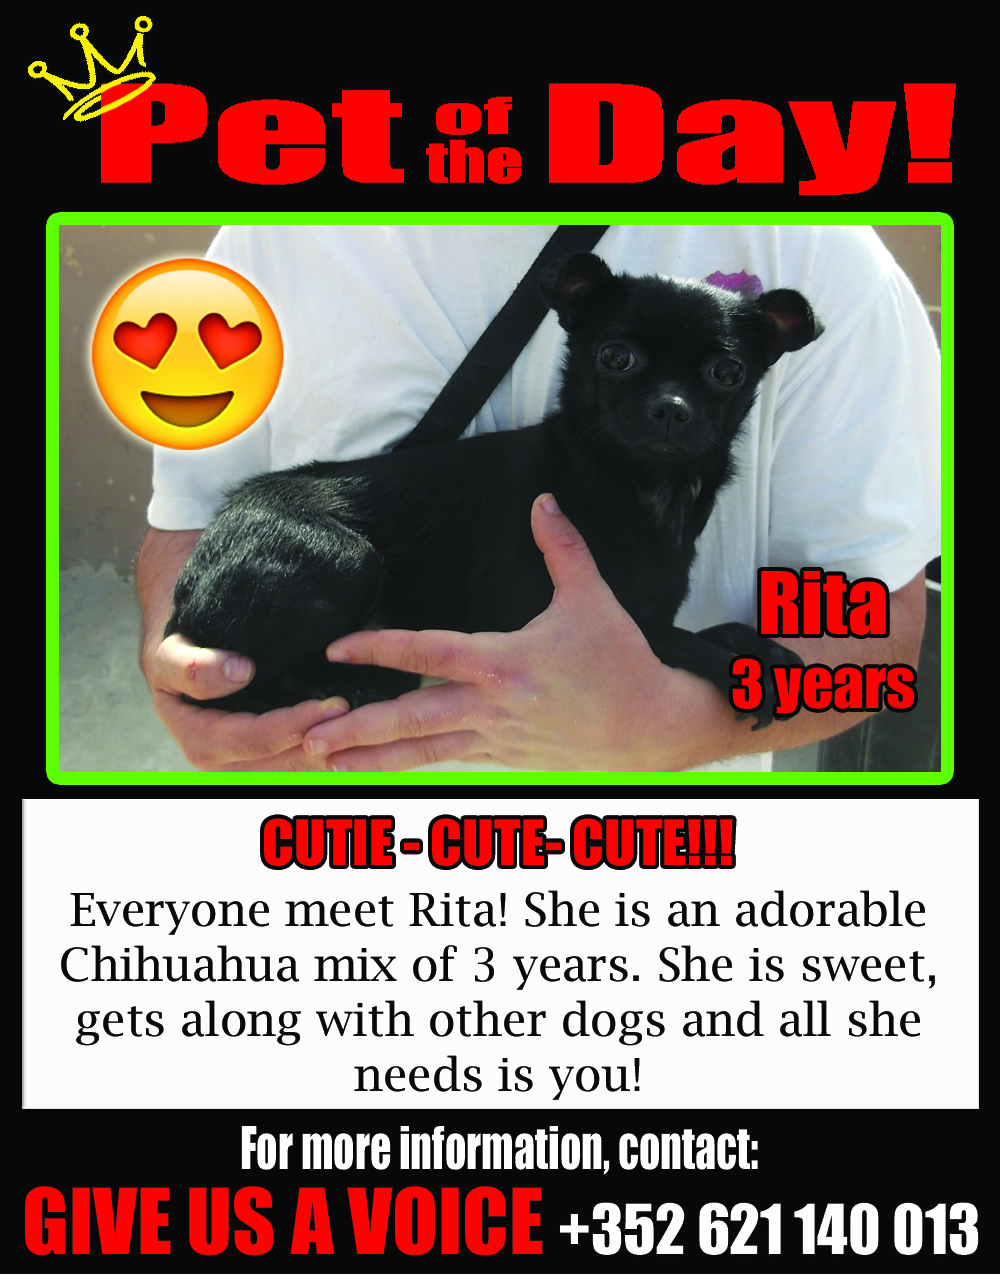 05-09-16 Pet of the Day